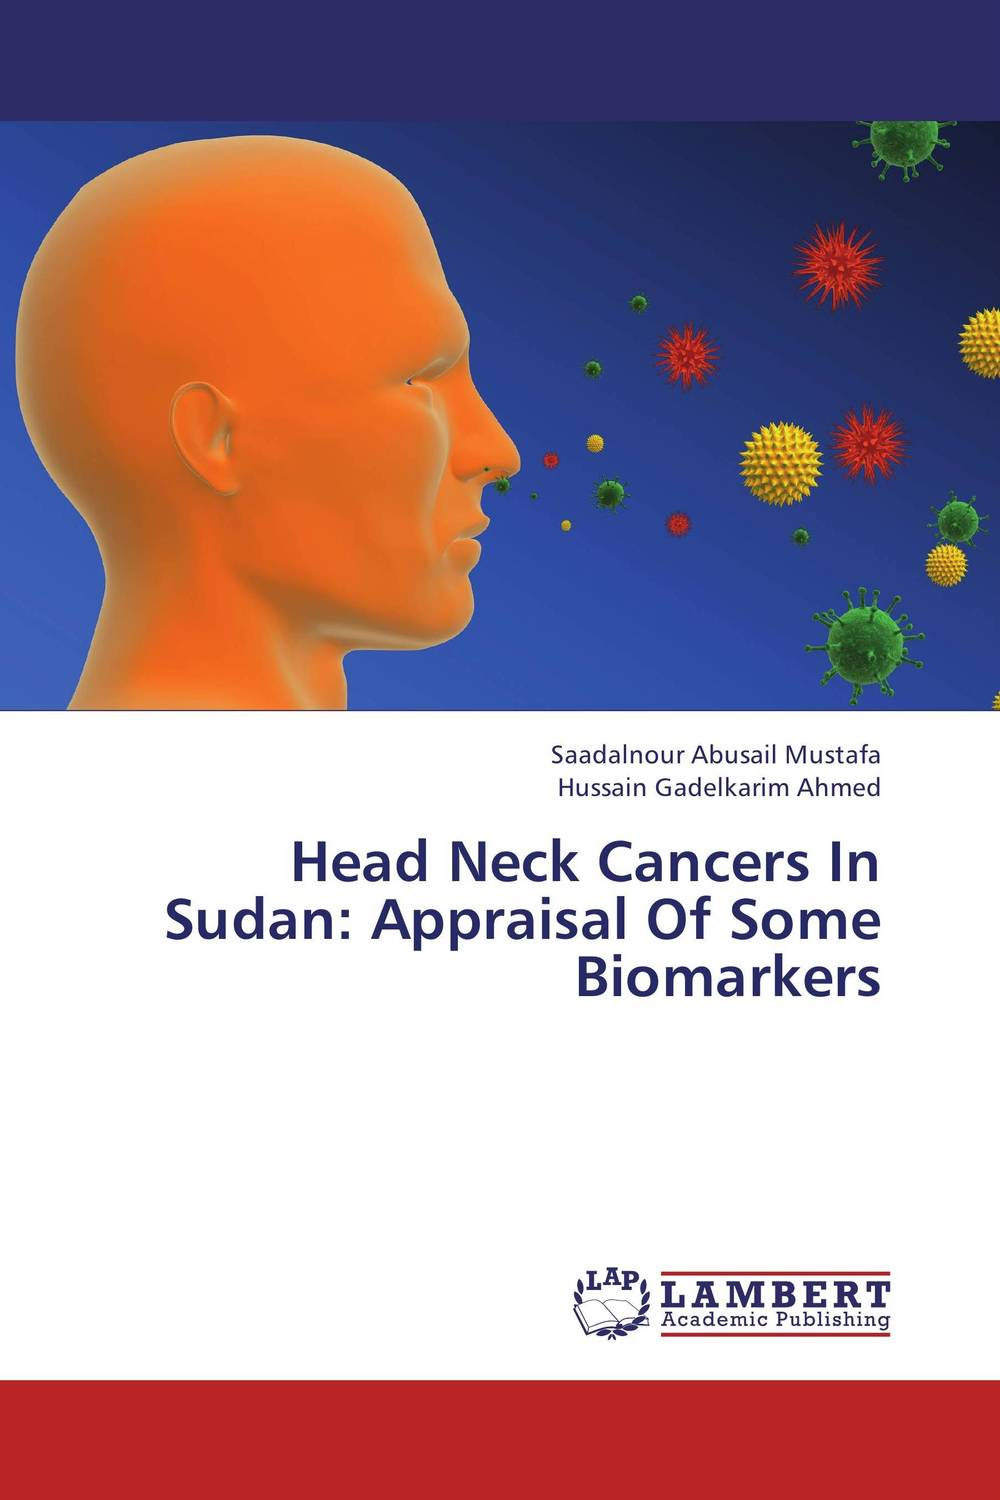 Head Neck Cancers In Sudan: Appraisal Of Some Biomarkers fhit a hit in human cancers